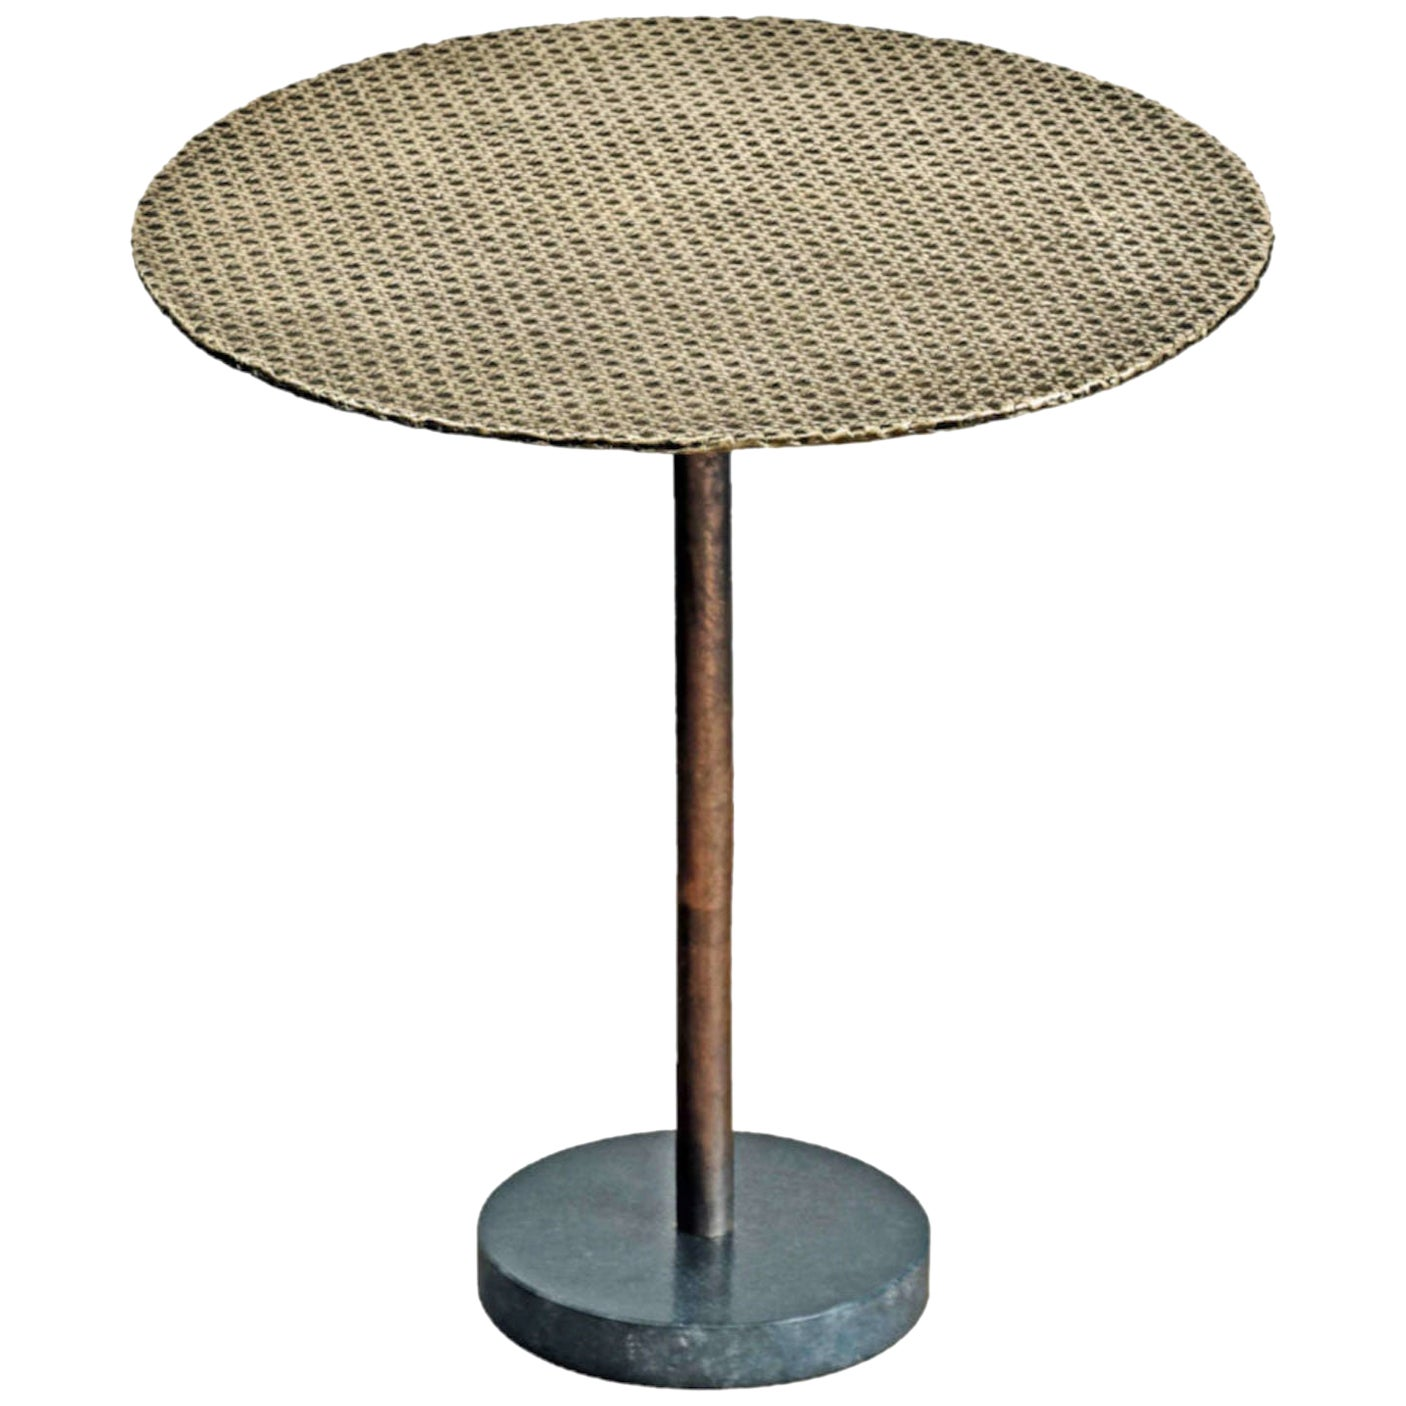 Irene Maria Ganser Emilie Side Table in Bronze and Marble